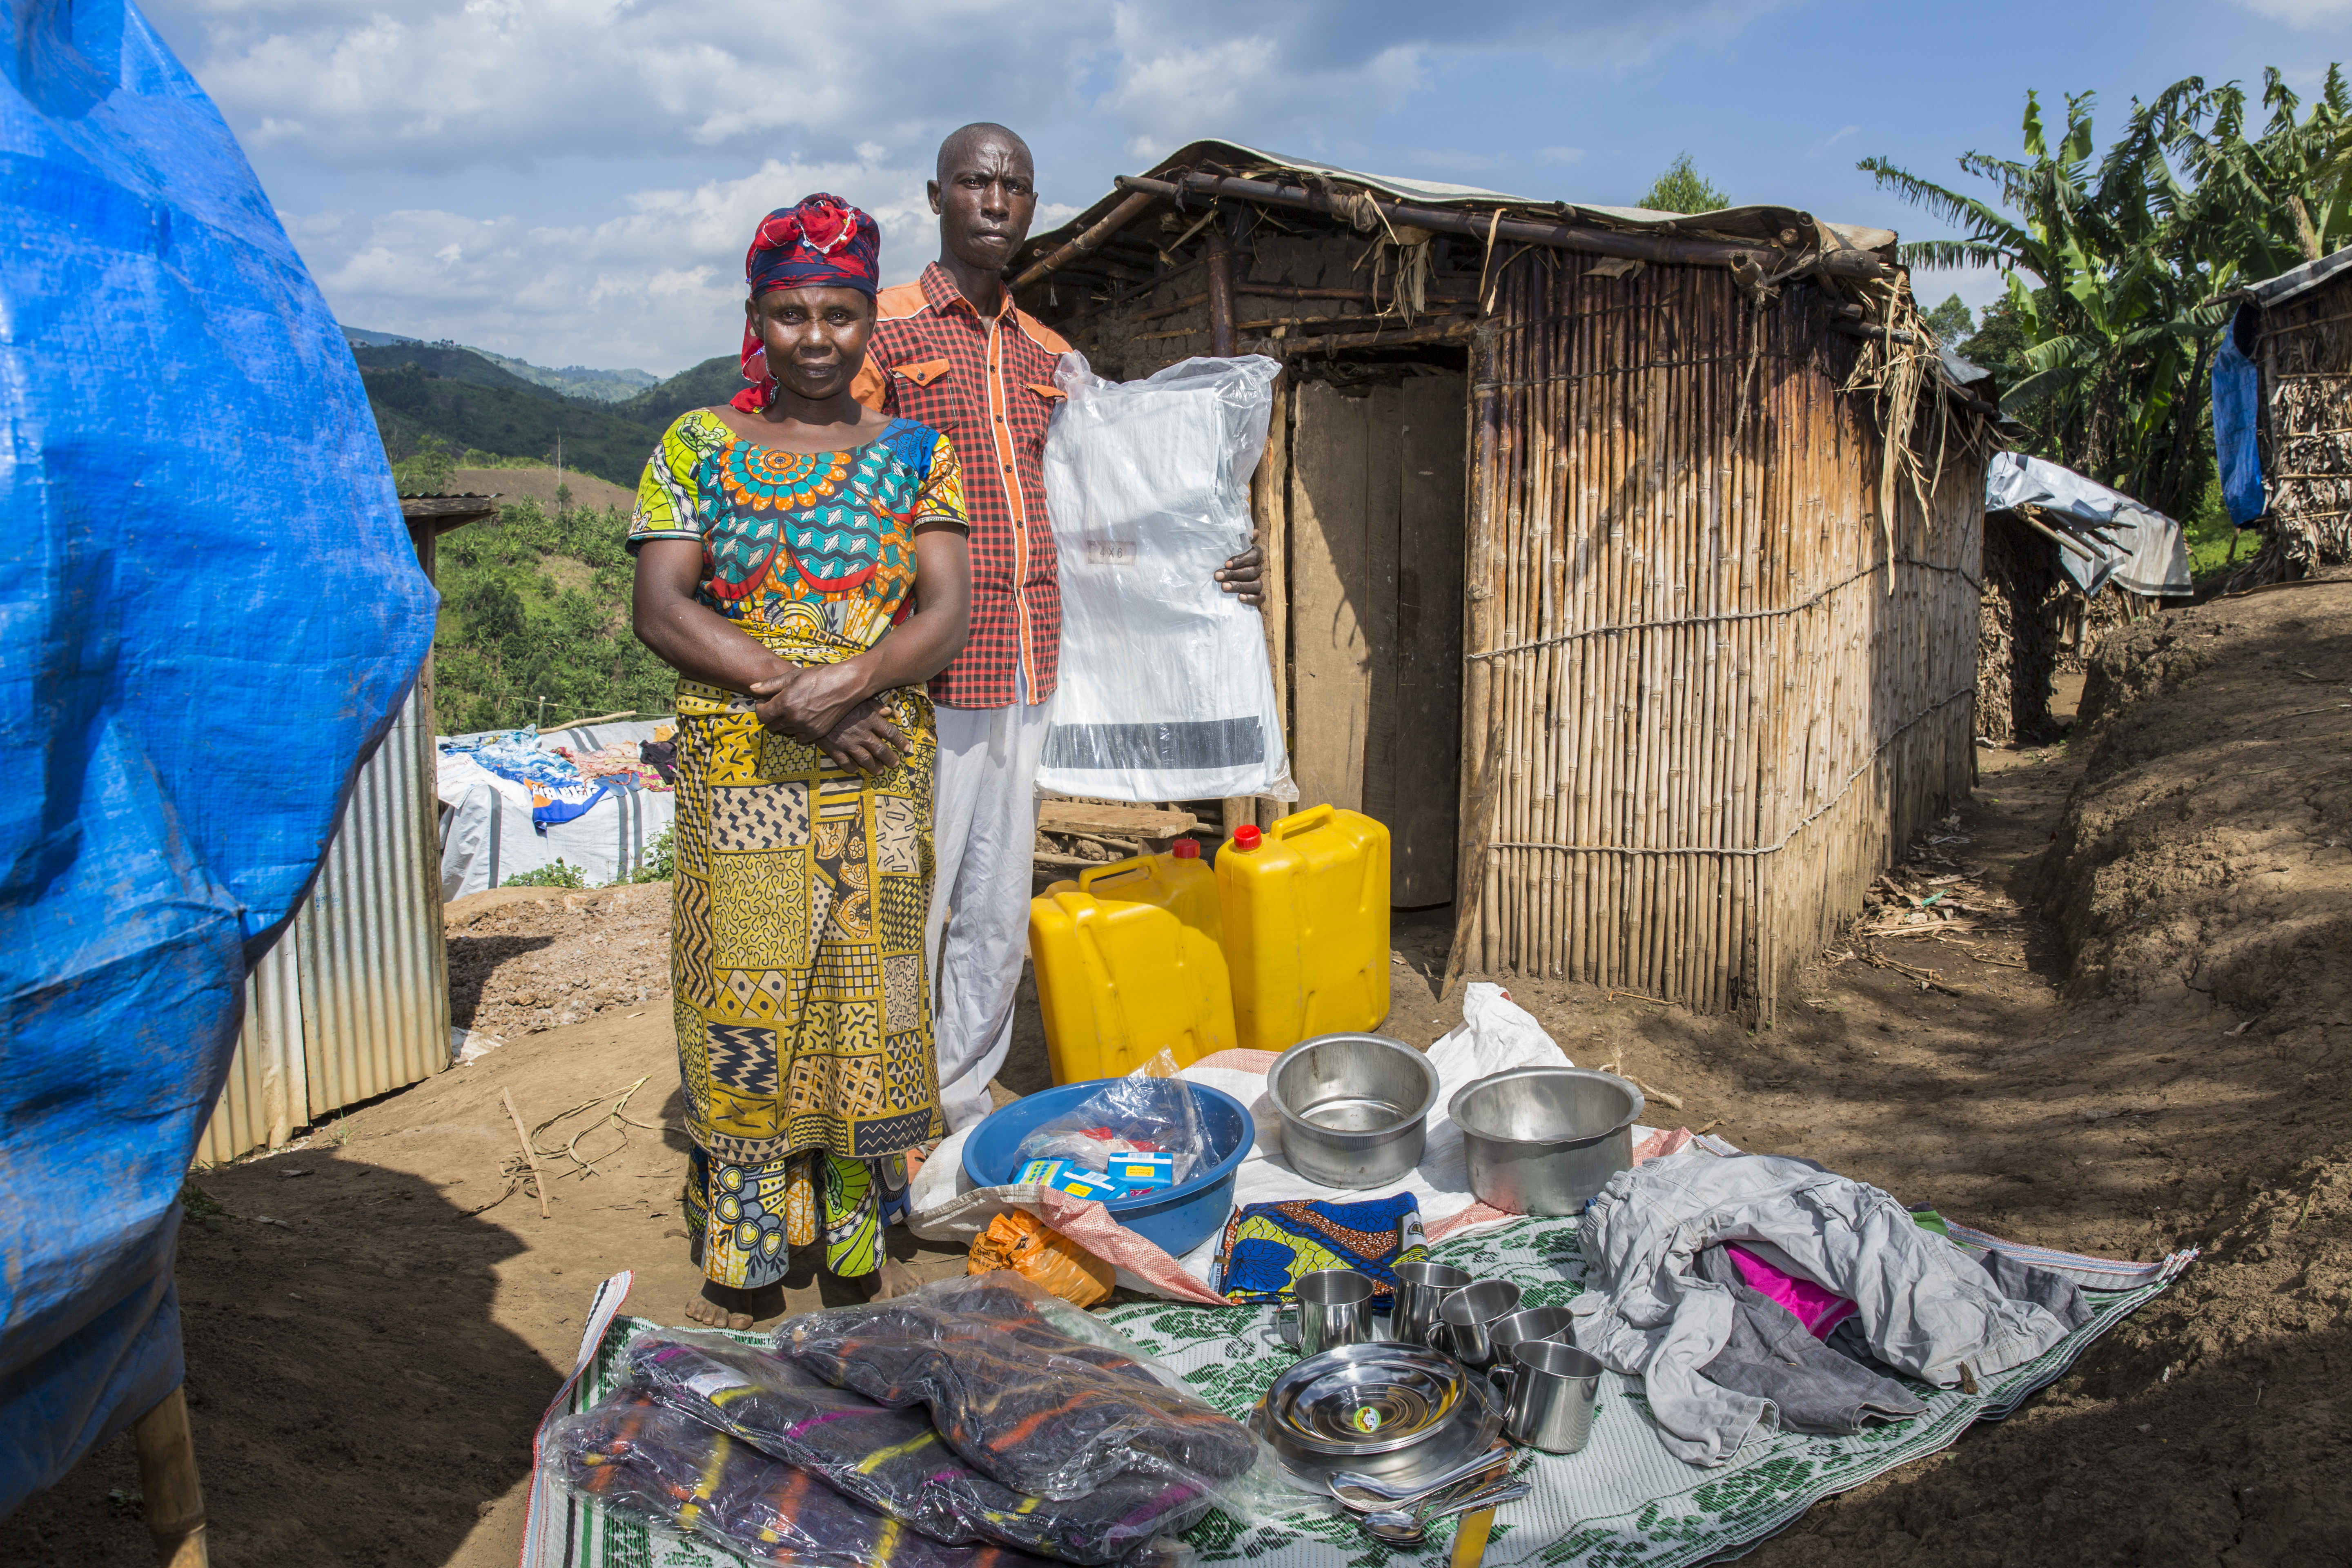 A couple standing outside a temporary shlter on a hillside in DRC with a set of household goods given to them by Concern